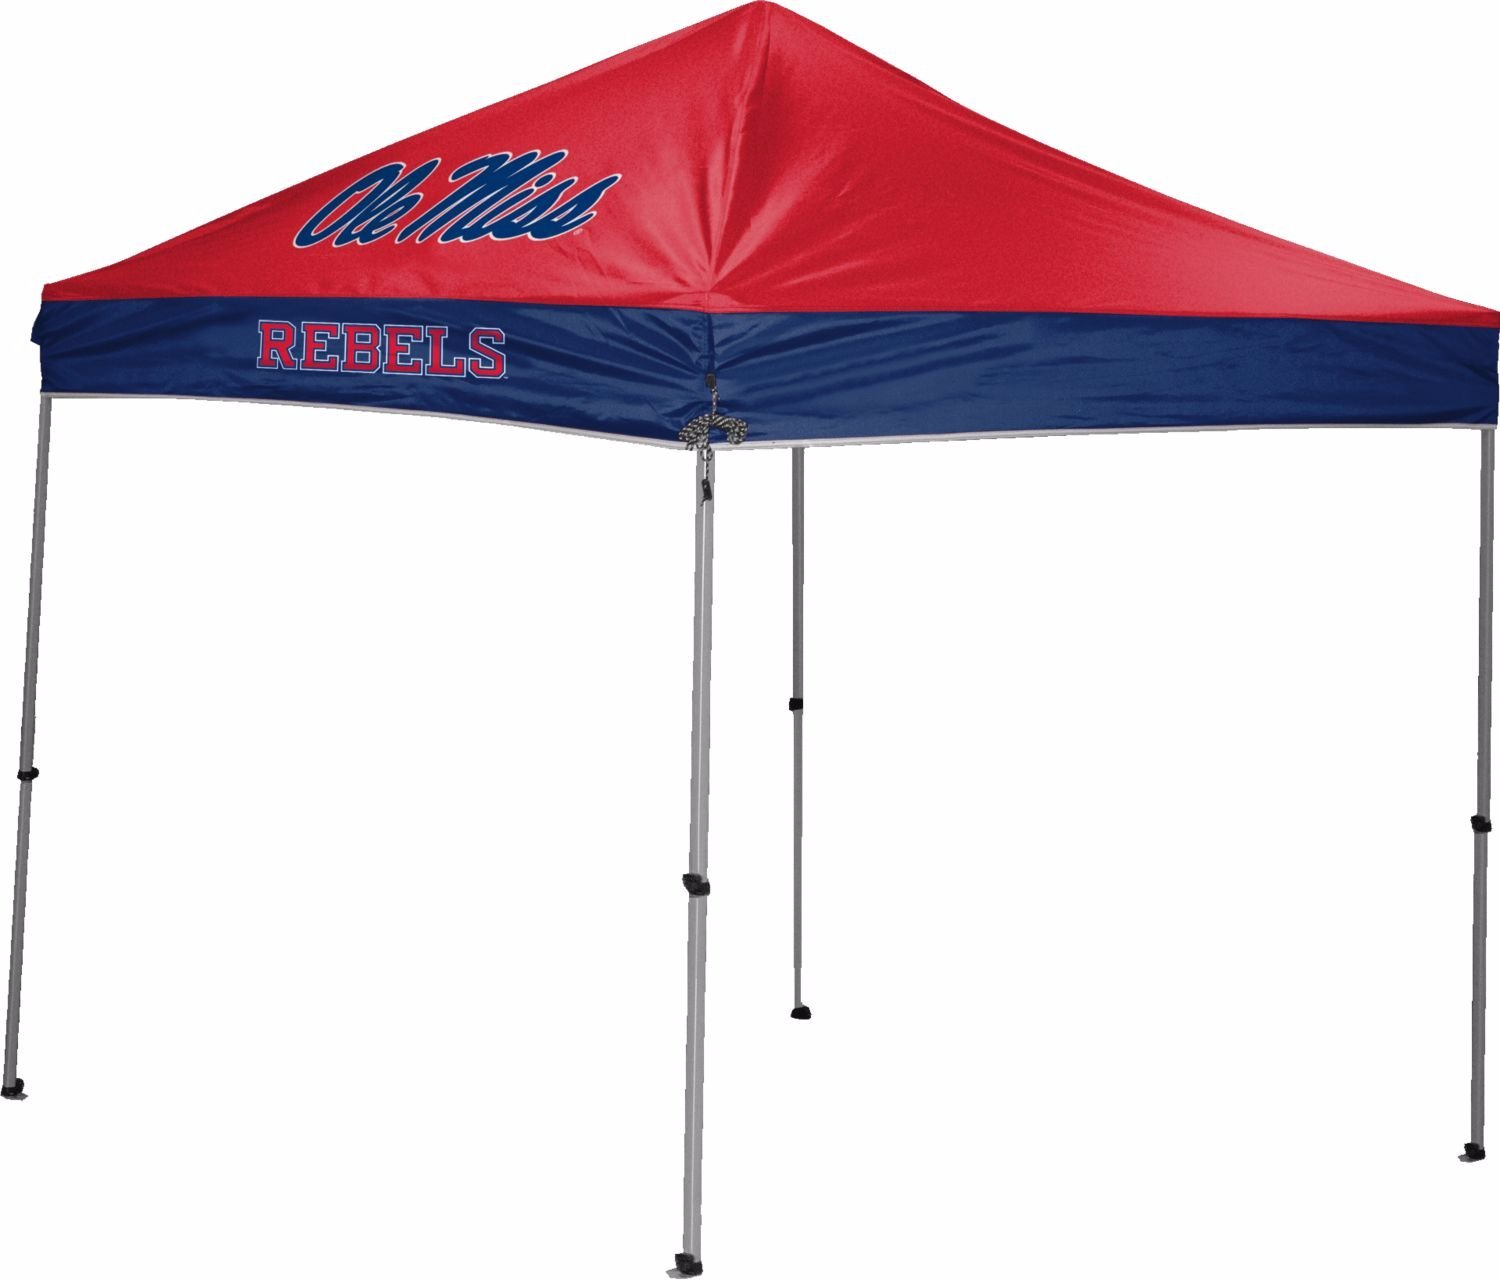 Jarden Sports Licensing NCAA Instant Pop-Up Canopy Tent with Carrying Case, 9x9 (All Team Options)